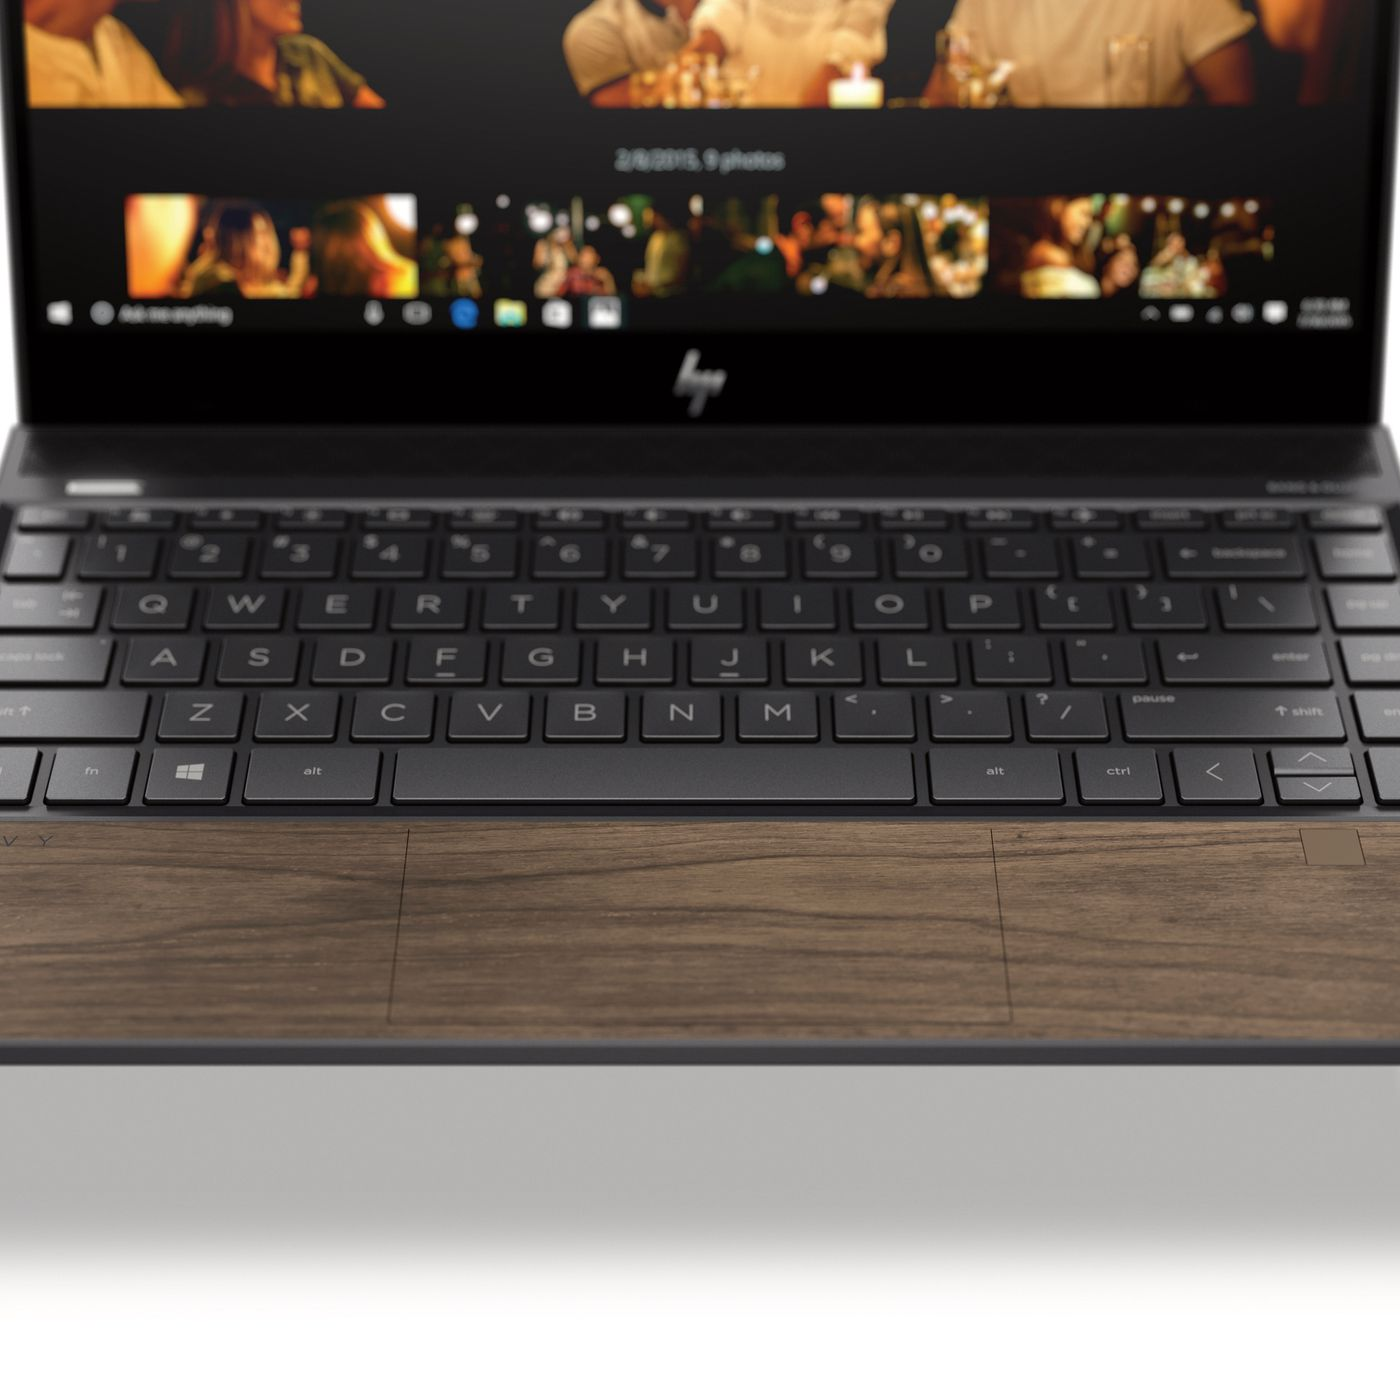 HP is finally fixing its terrible trackpads - The Verge